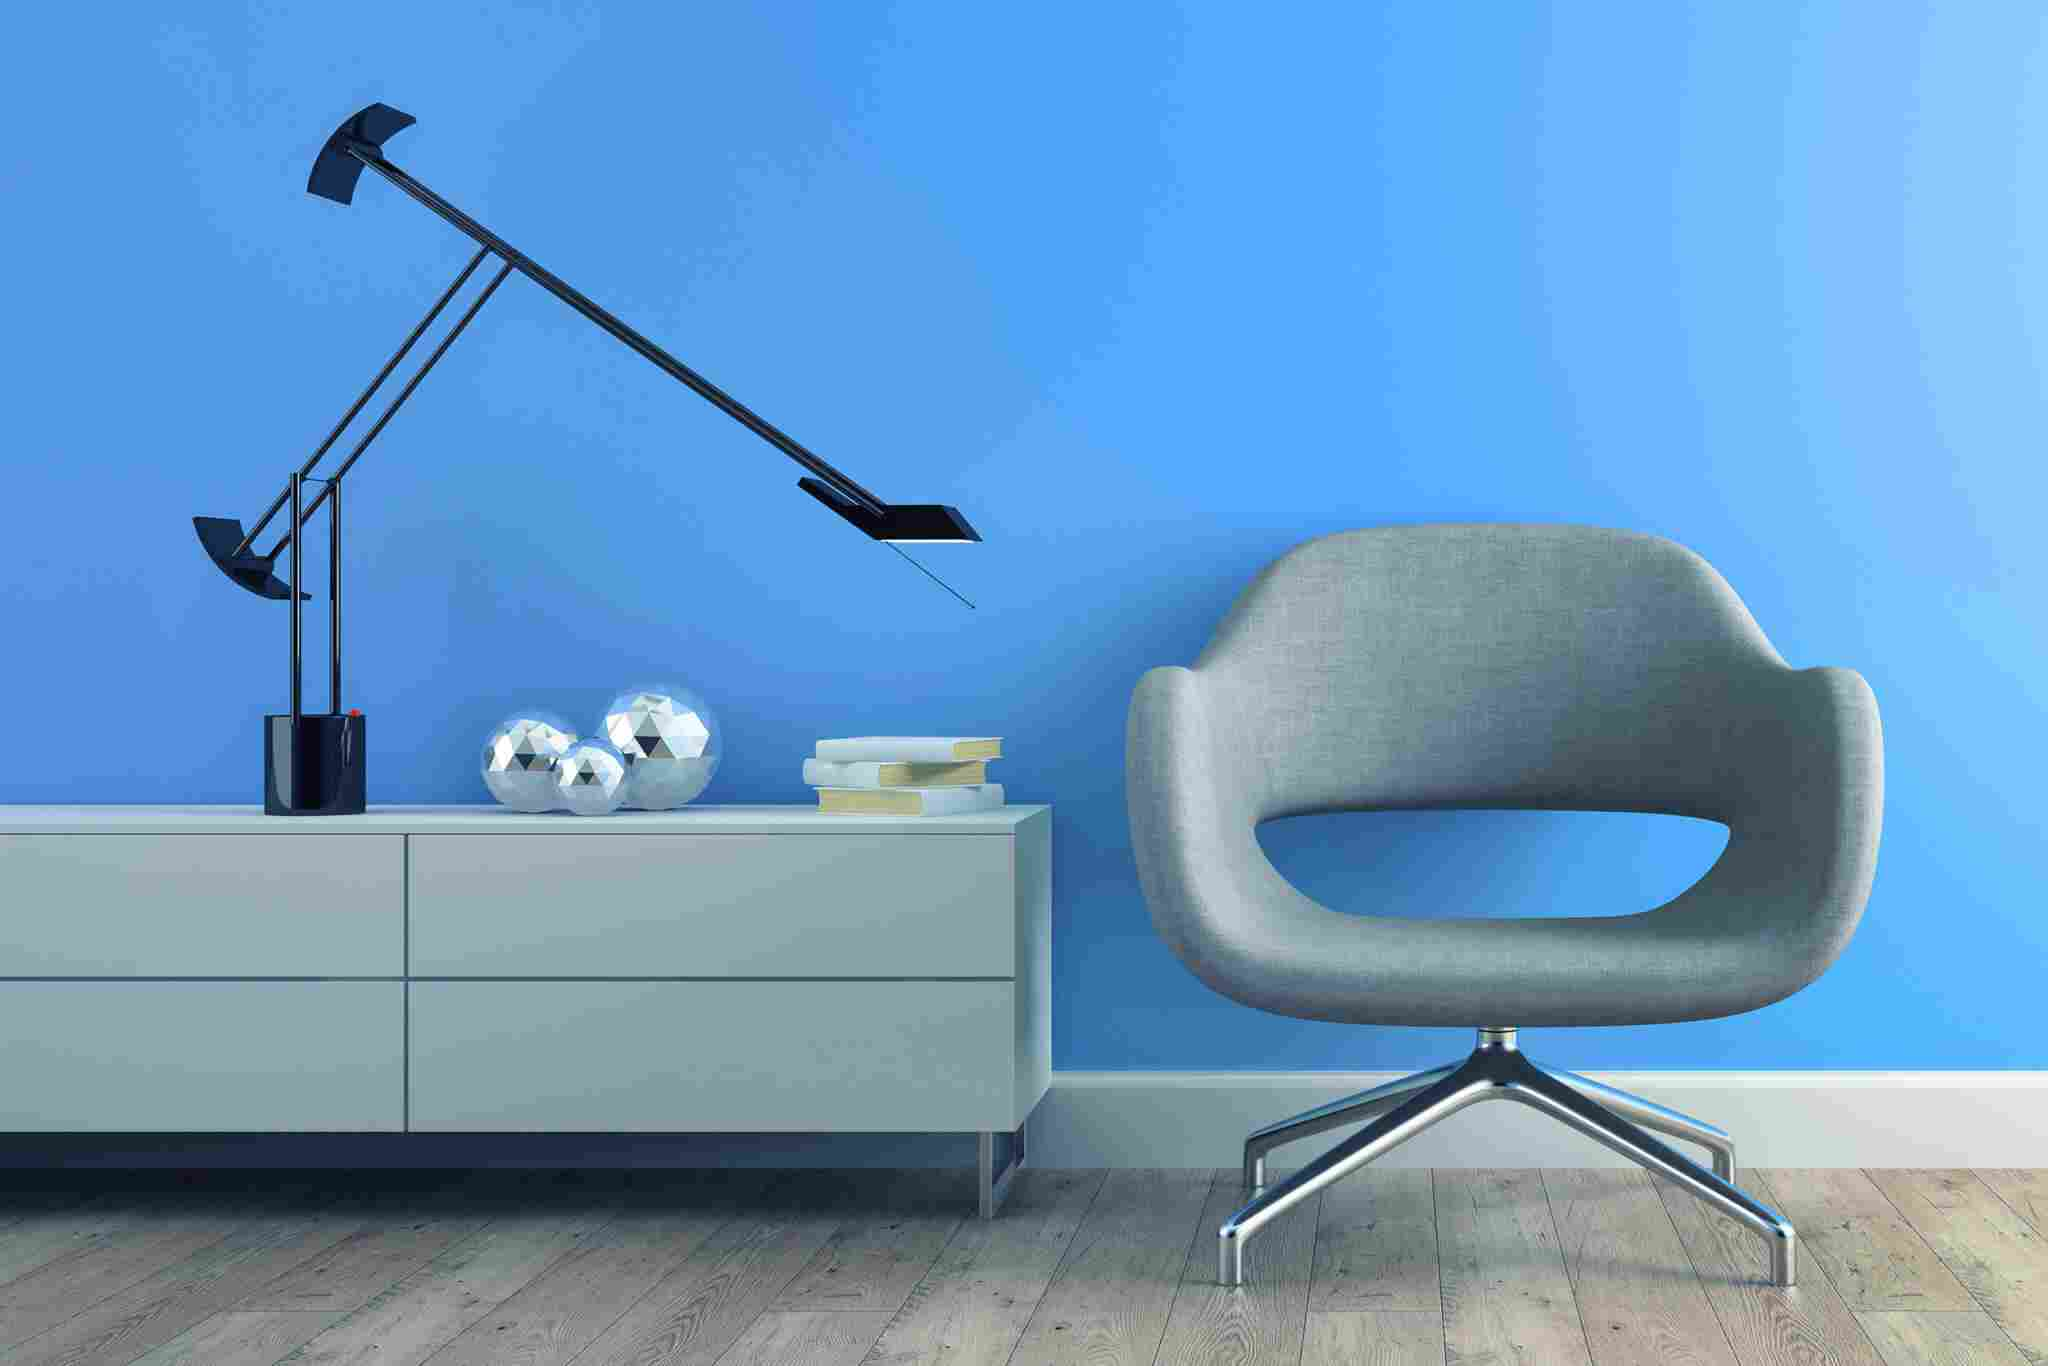 http://www.pocketworth.in/wp-content/uploads/2017/05/image-chair-blue-wall.jpg